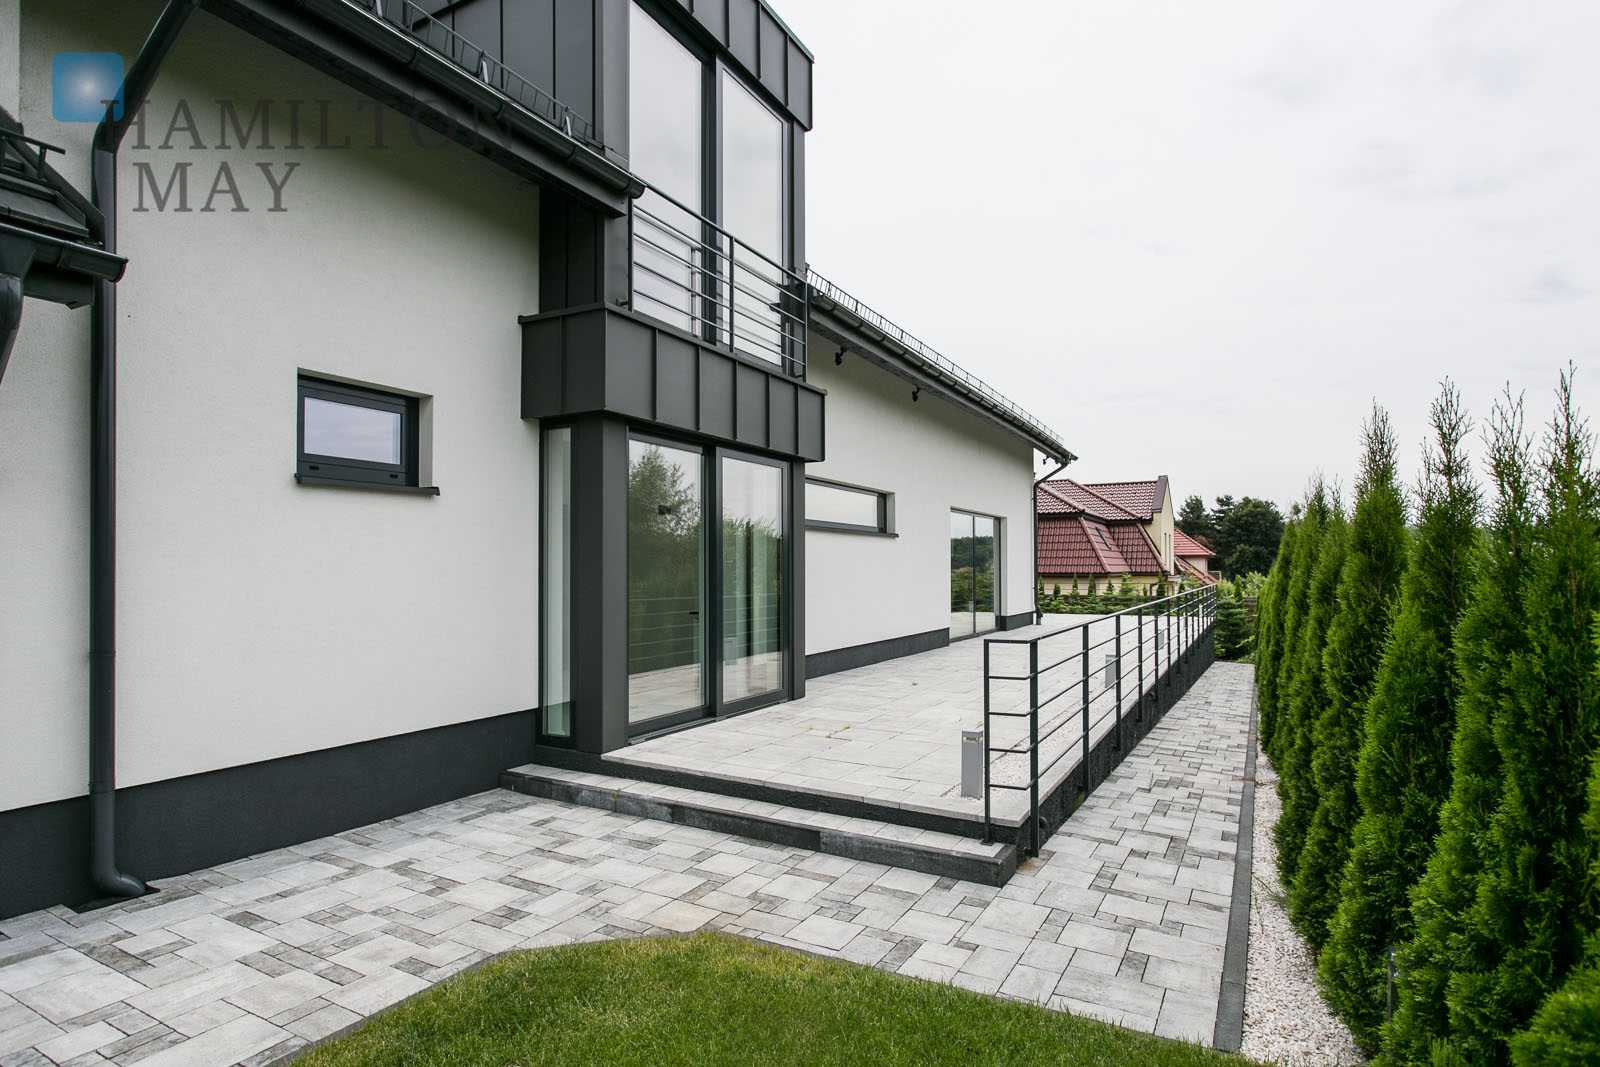 A luxurious house available for sale in the green and peaceful part of Wola Justowska Krakow for sale